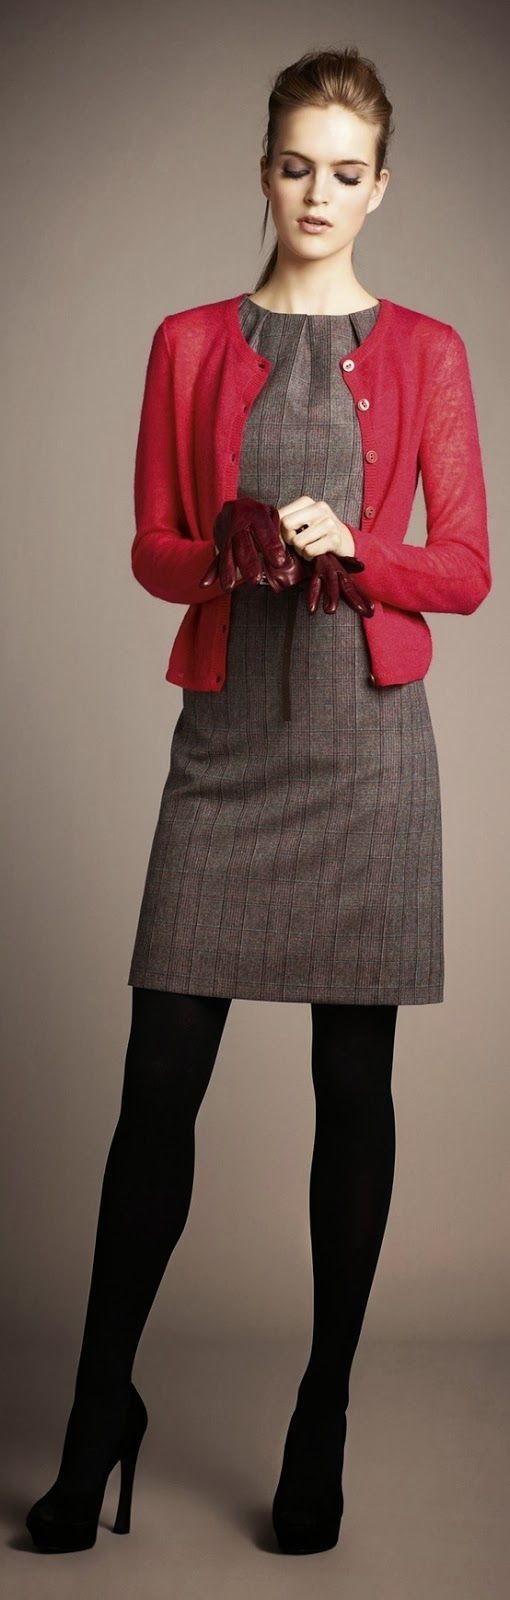 career clothes with girly touches - Google Search